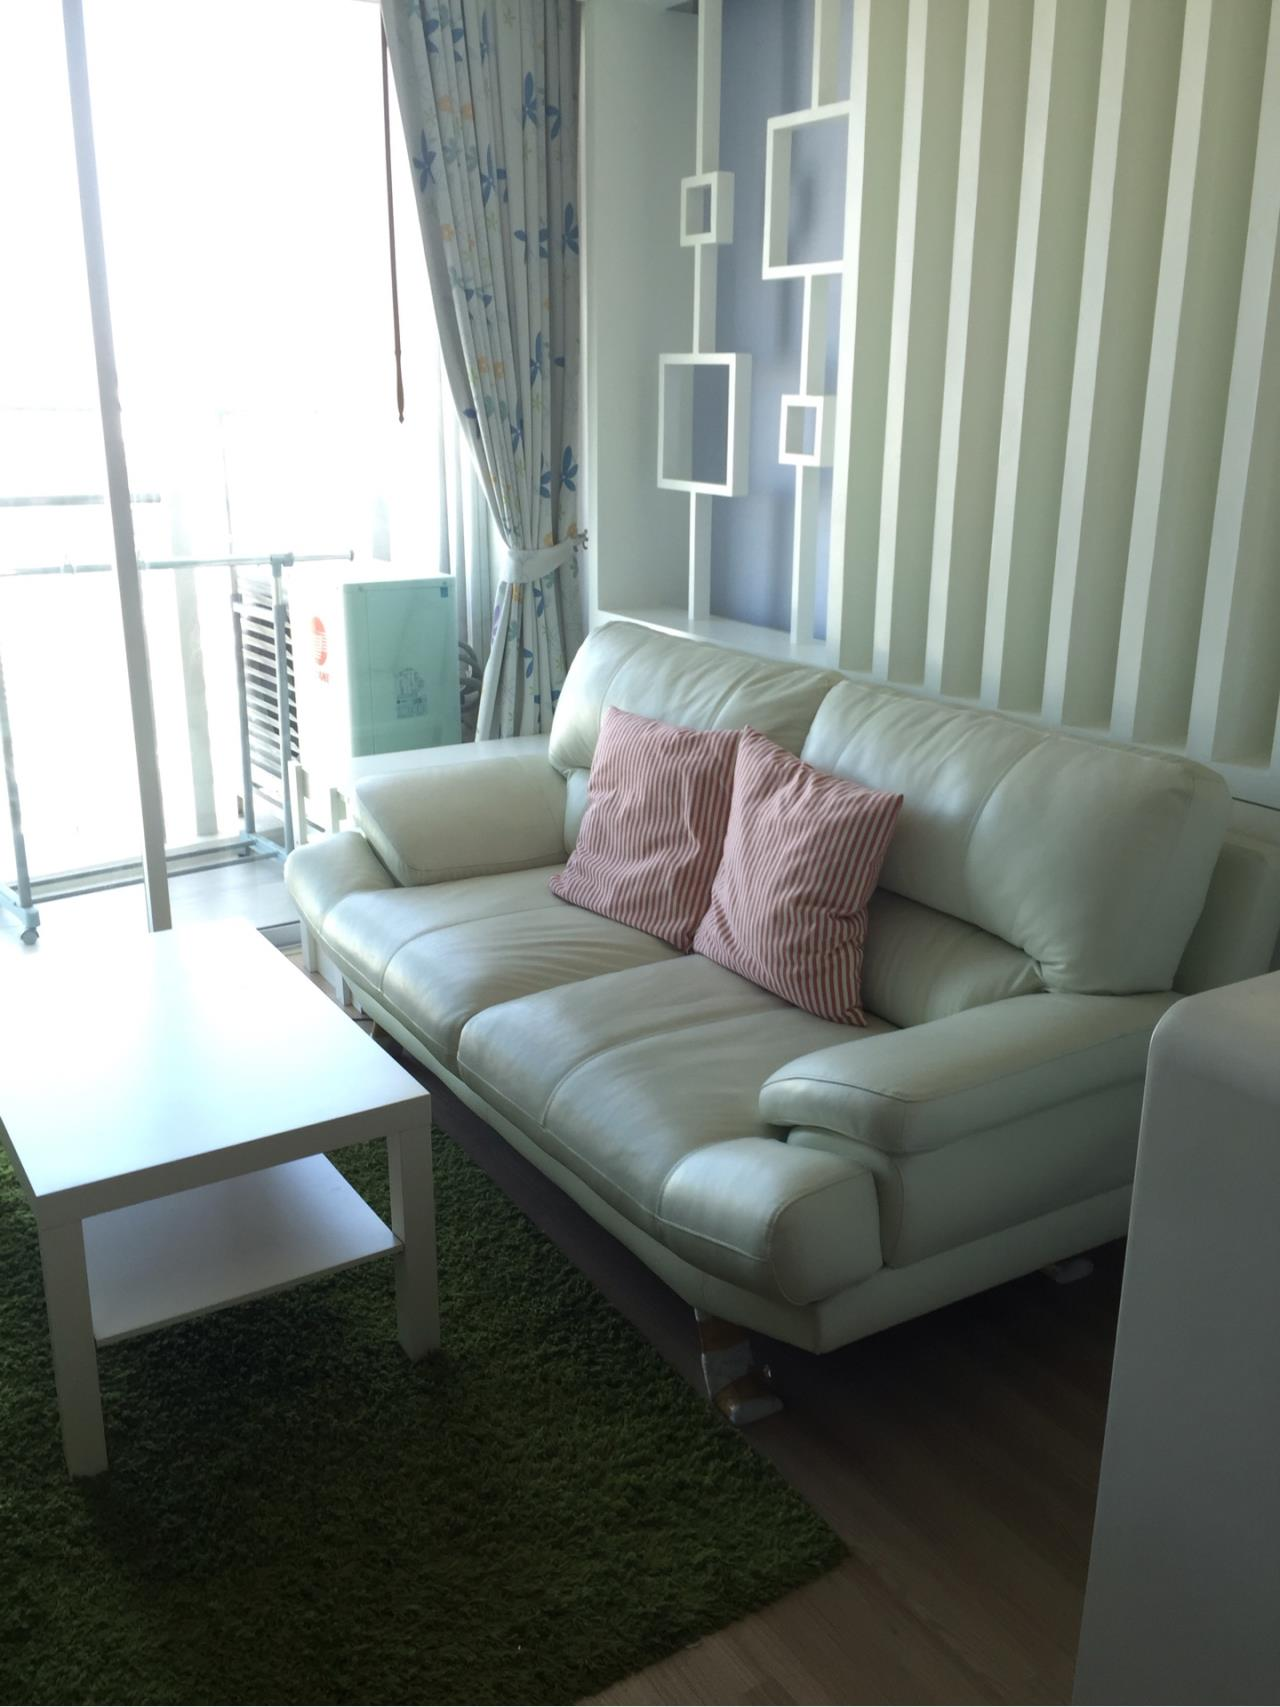 Quality Life Property Agency's Condo 2 Bedroom For Rent At Sky Walk  High 36 , Nice View 1